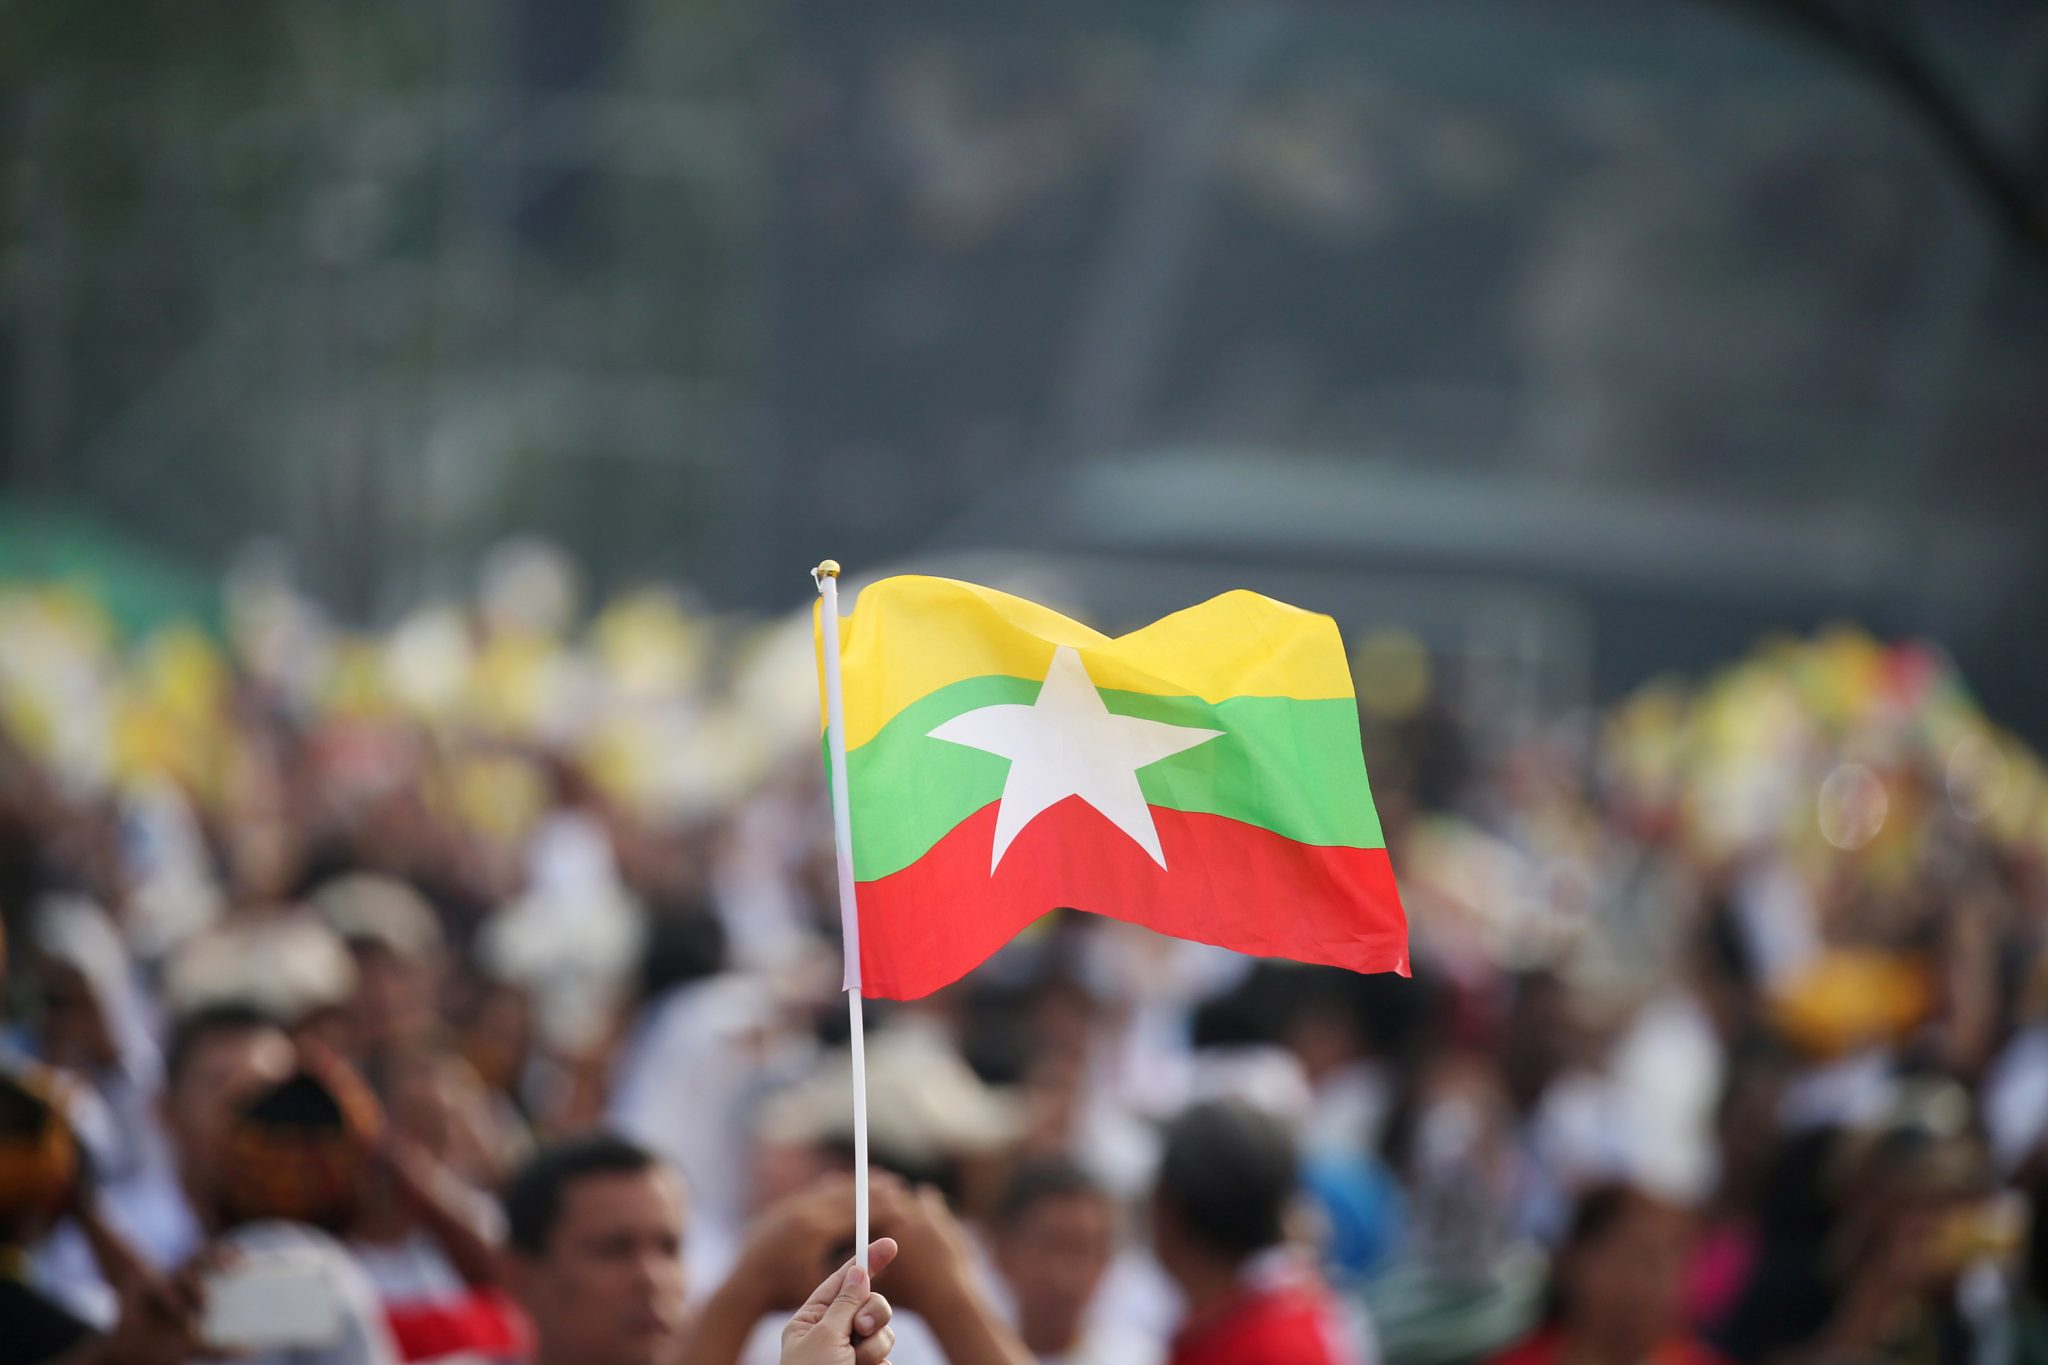 Social upheaval in Myanmar disrupts liner operations at ports